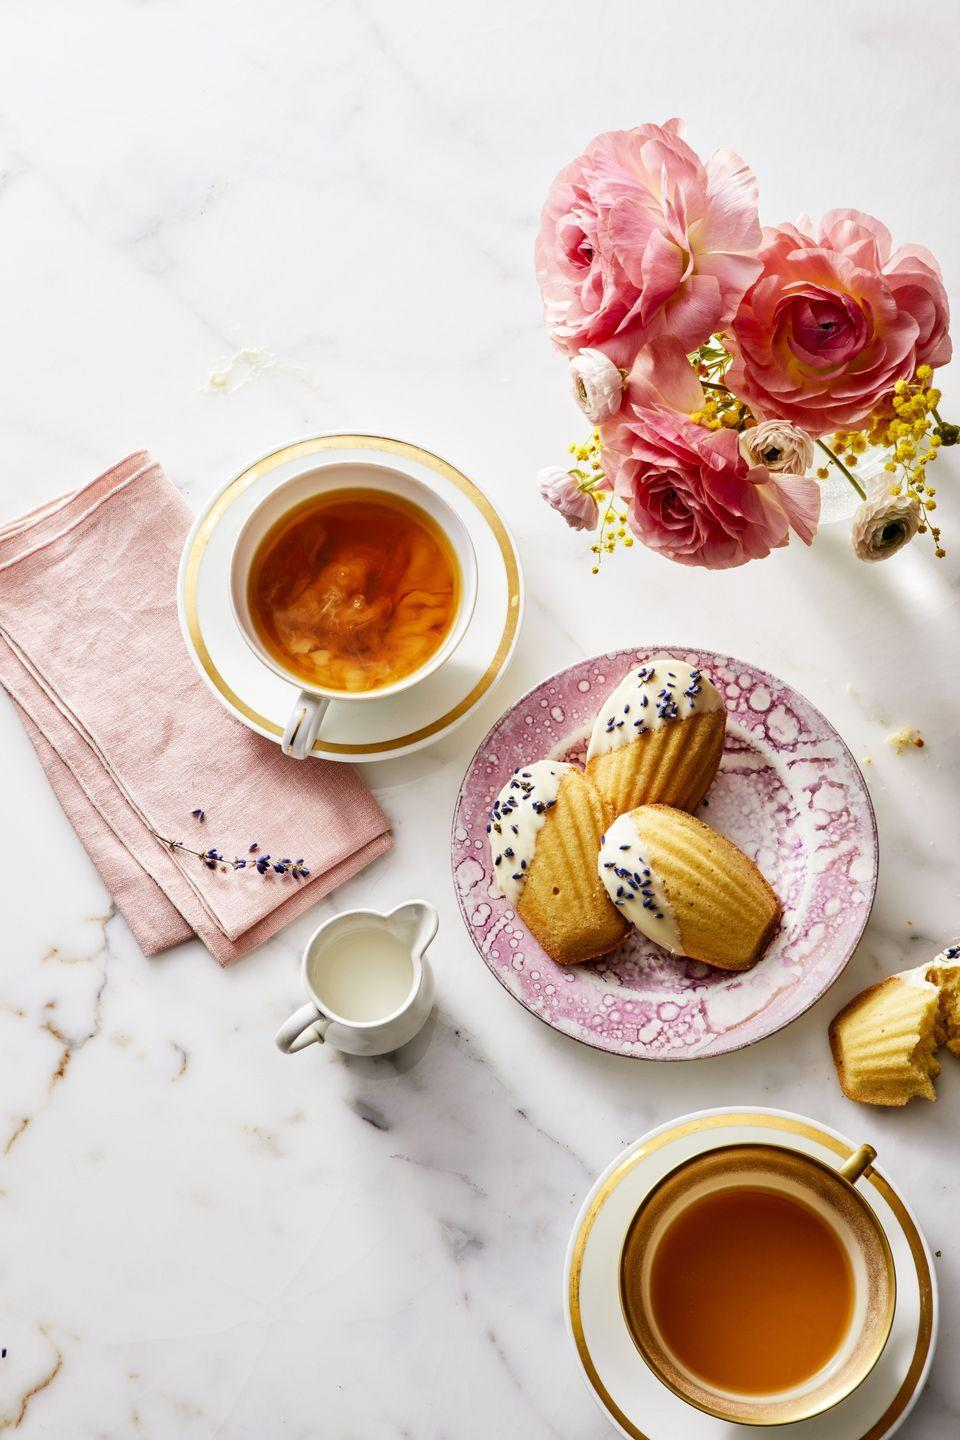 "<p>While you wait for the day that you can treat her to a Parisian adventure, make her these cake-like French treats. And while you're at it, brew her a cup of her favorite herbal tea to go with them.</p><p><em><a href=""https://www.goodhousekeeping.com/food-recipes/dessert/a27274891/white-chocolate-and-lavender-madeleines-recipe/"" rel=""nofollow noopener"" target=""_blank"" data-ylk=""slk:Get the recipe for White Chocolate and Lavender Madeleines »"" class=""link rapid-noclick-resp"">Get the recipe for White Chocolate and Lavender Madeleines »</a></em> <strong><br></strong></p><p><strong>RELATED:</strong> <a href=""https://www.goodhousekeeping.com/holidays/mothers-day/g676/mothers-day-brunch-recipes/"" rel=""nofollow noopener"" target=""_blank"" data-ylk=""slk:40 Best Mother's Day Brunch Recipes Mom Will Love"" class=""link rapid-noclick-resp"">40 Best Mother's Day Brunch Recipes Mom Will Love</a></p>"